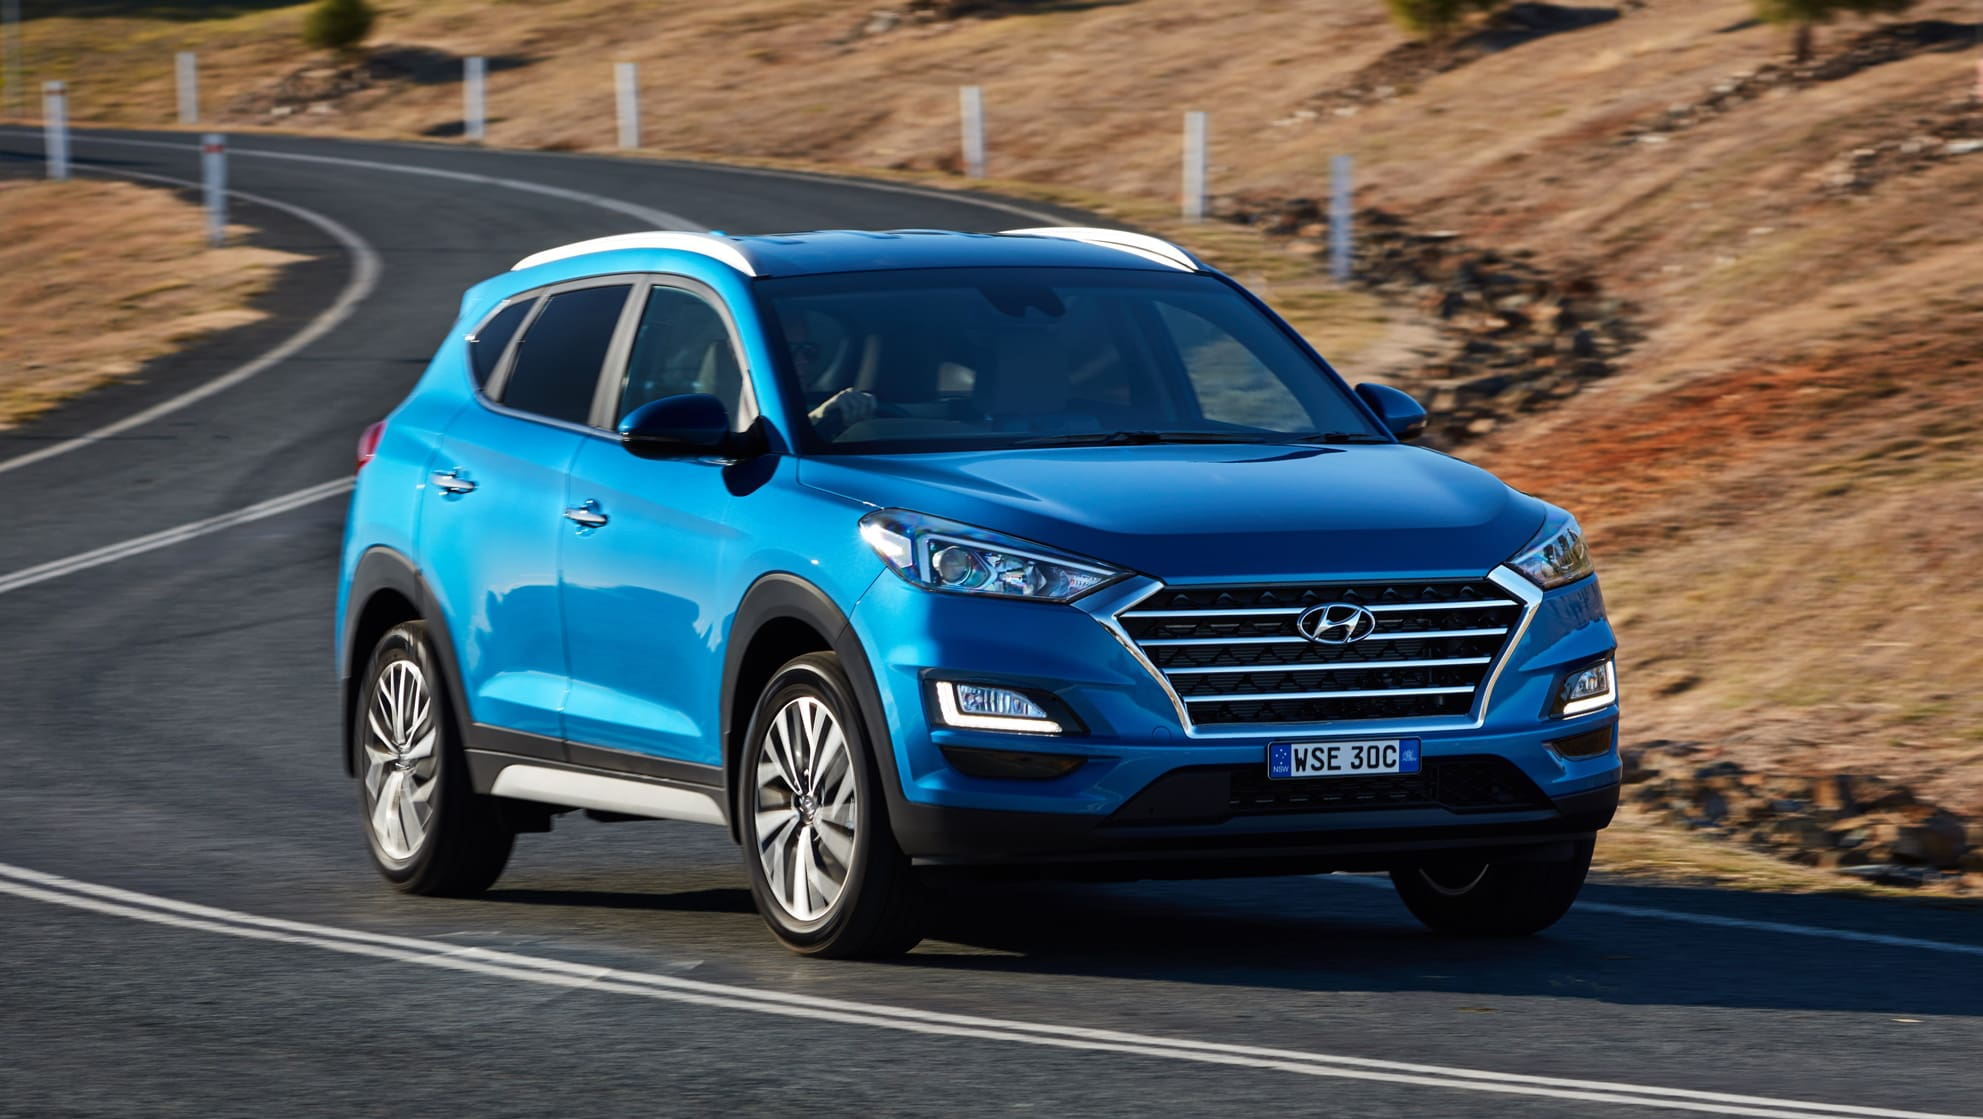 hyundai tucson 2018 pricing and spec confirmed car news carsguide. Black Bedroom Furniture Sets. Home Design Ideas